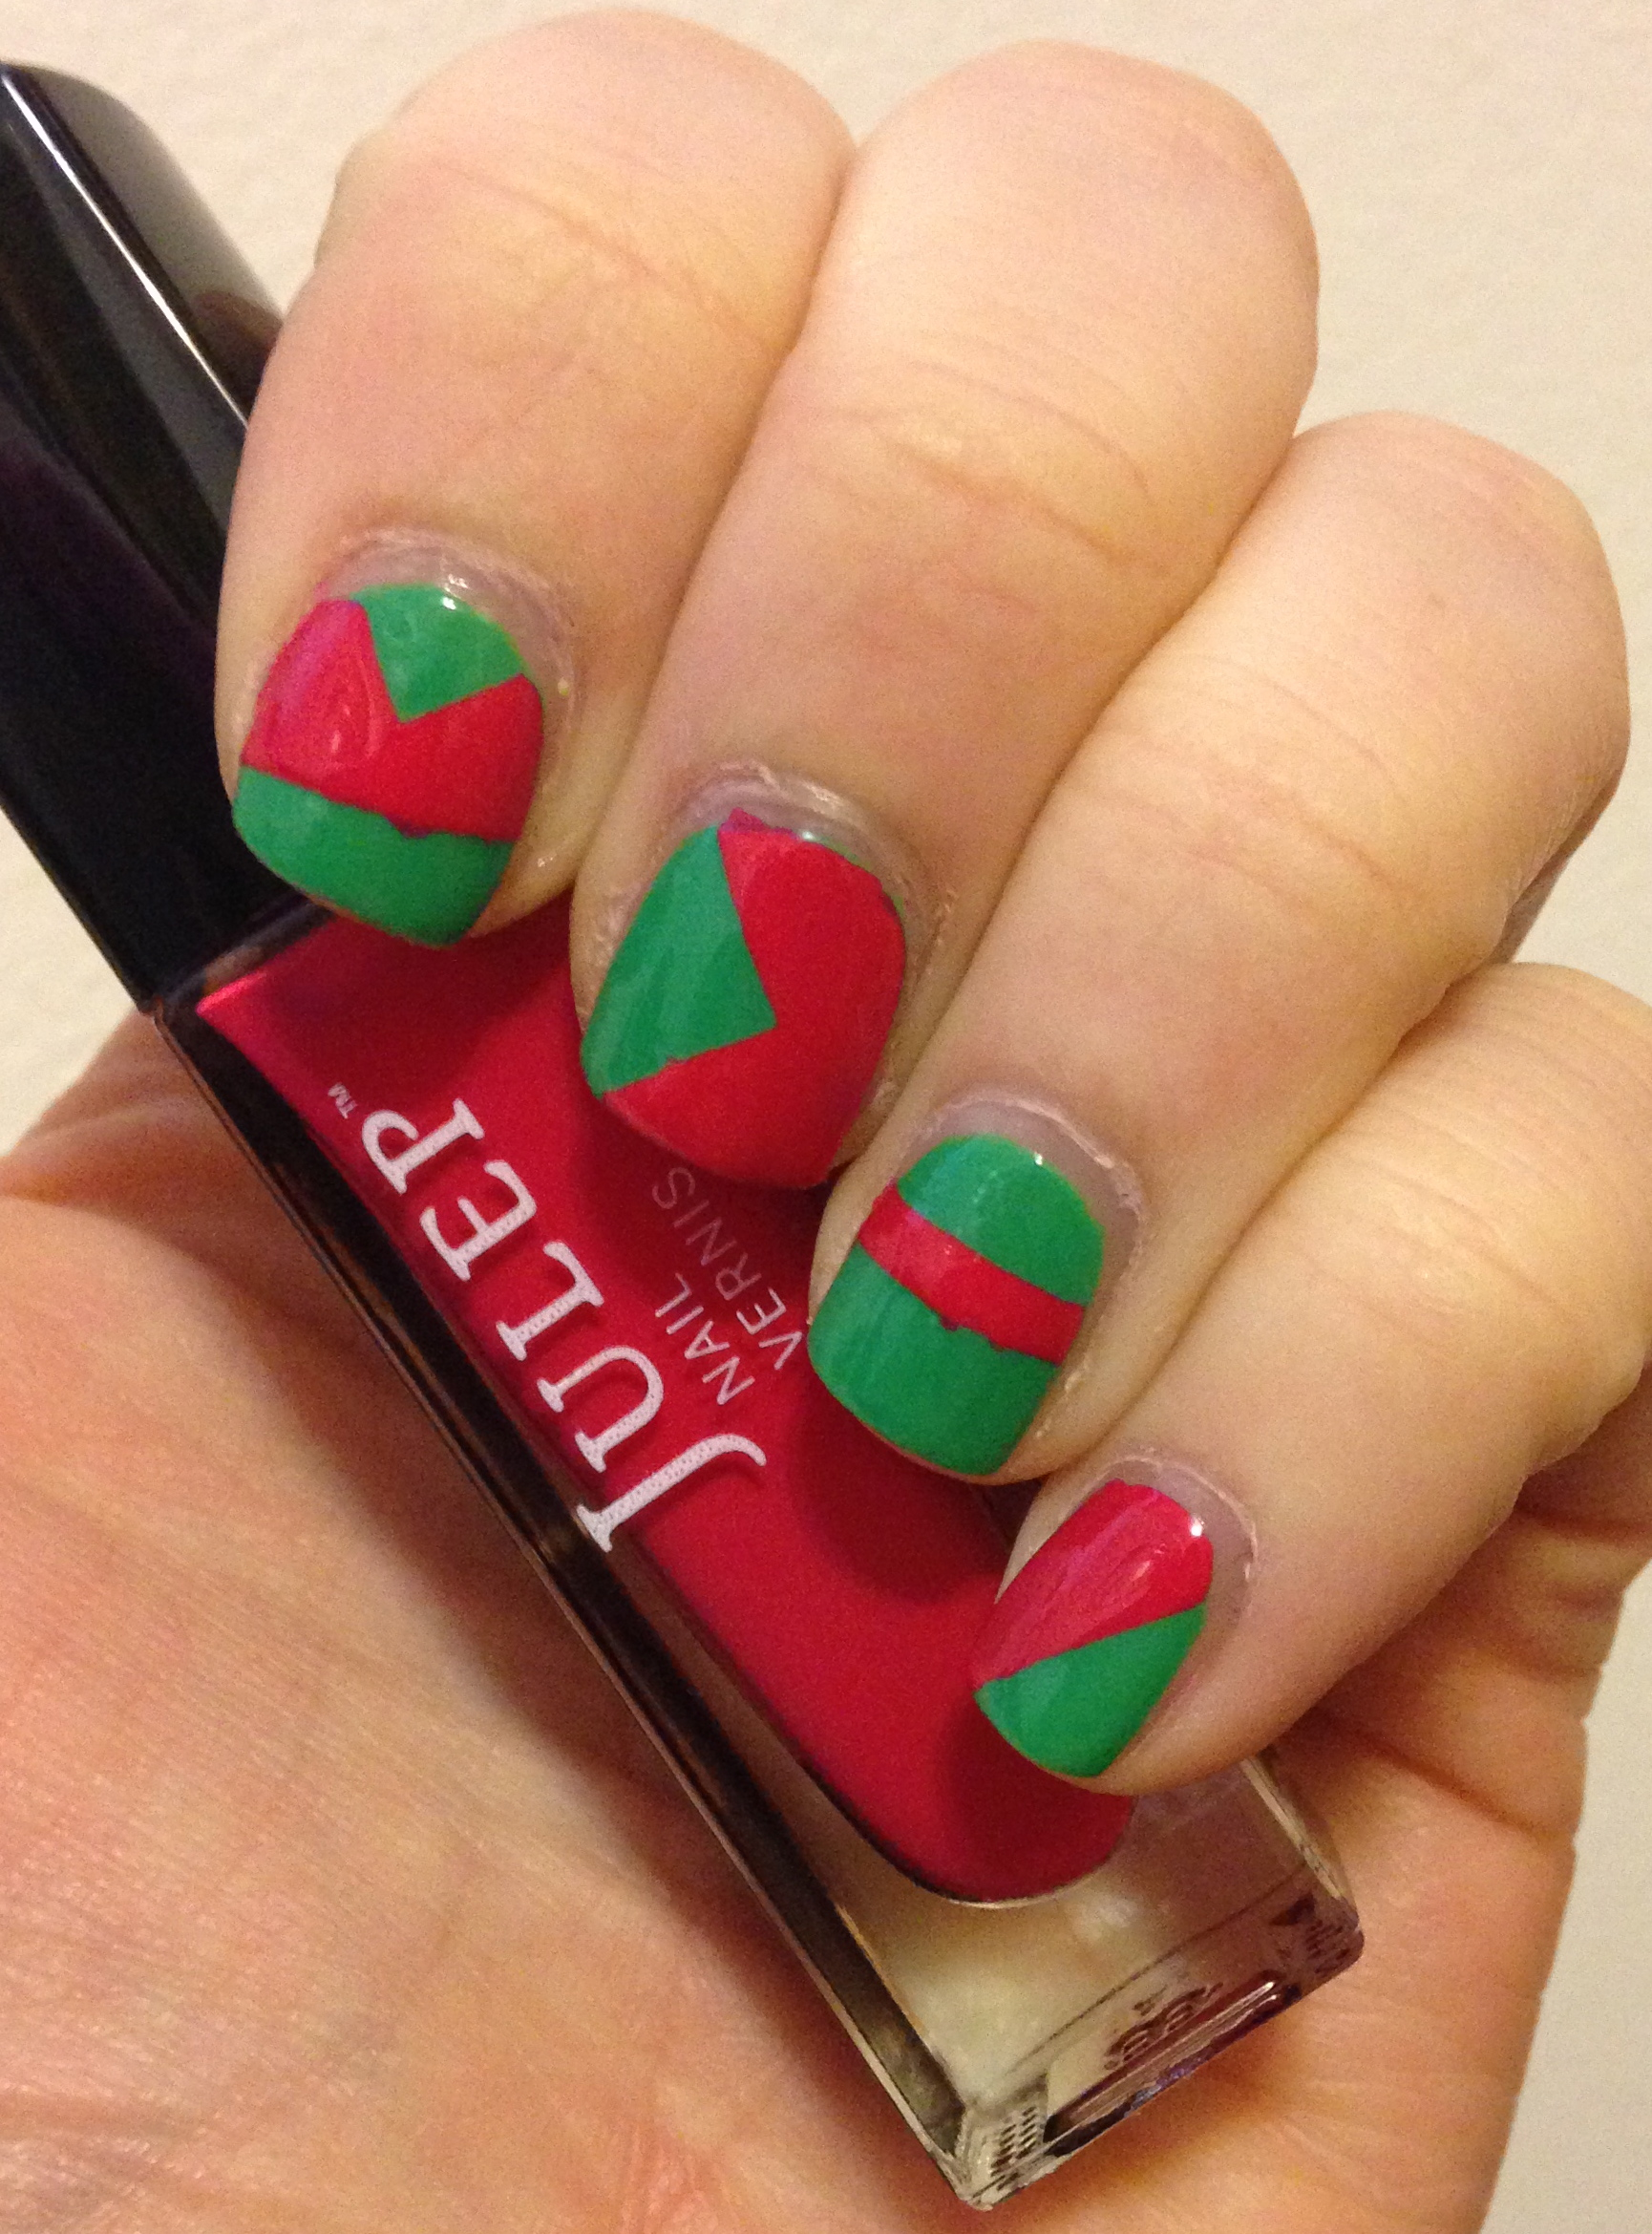 Geometric Rose Garden Nail Art Featuring Nail Stickers From Born